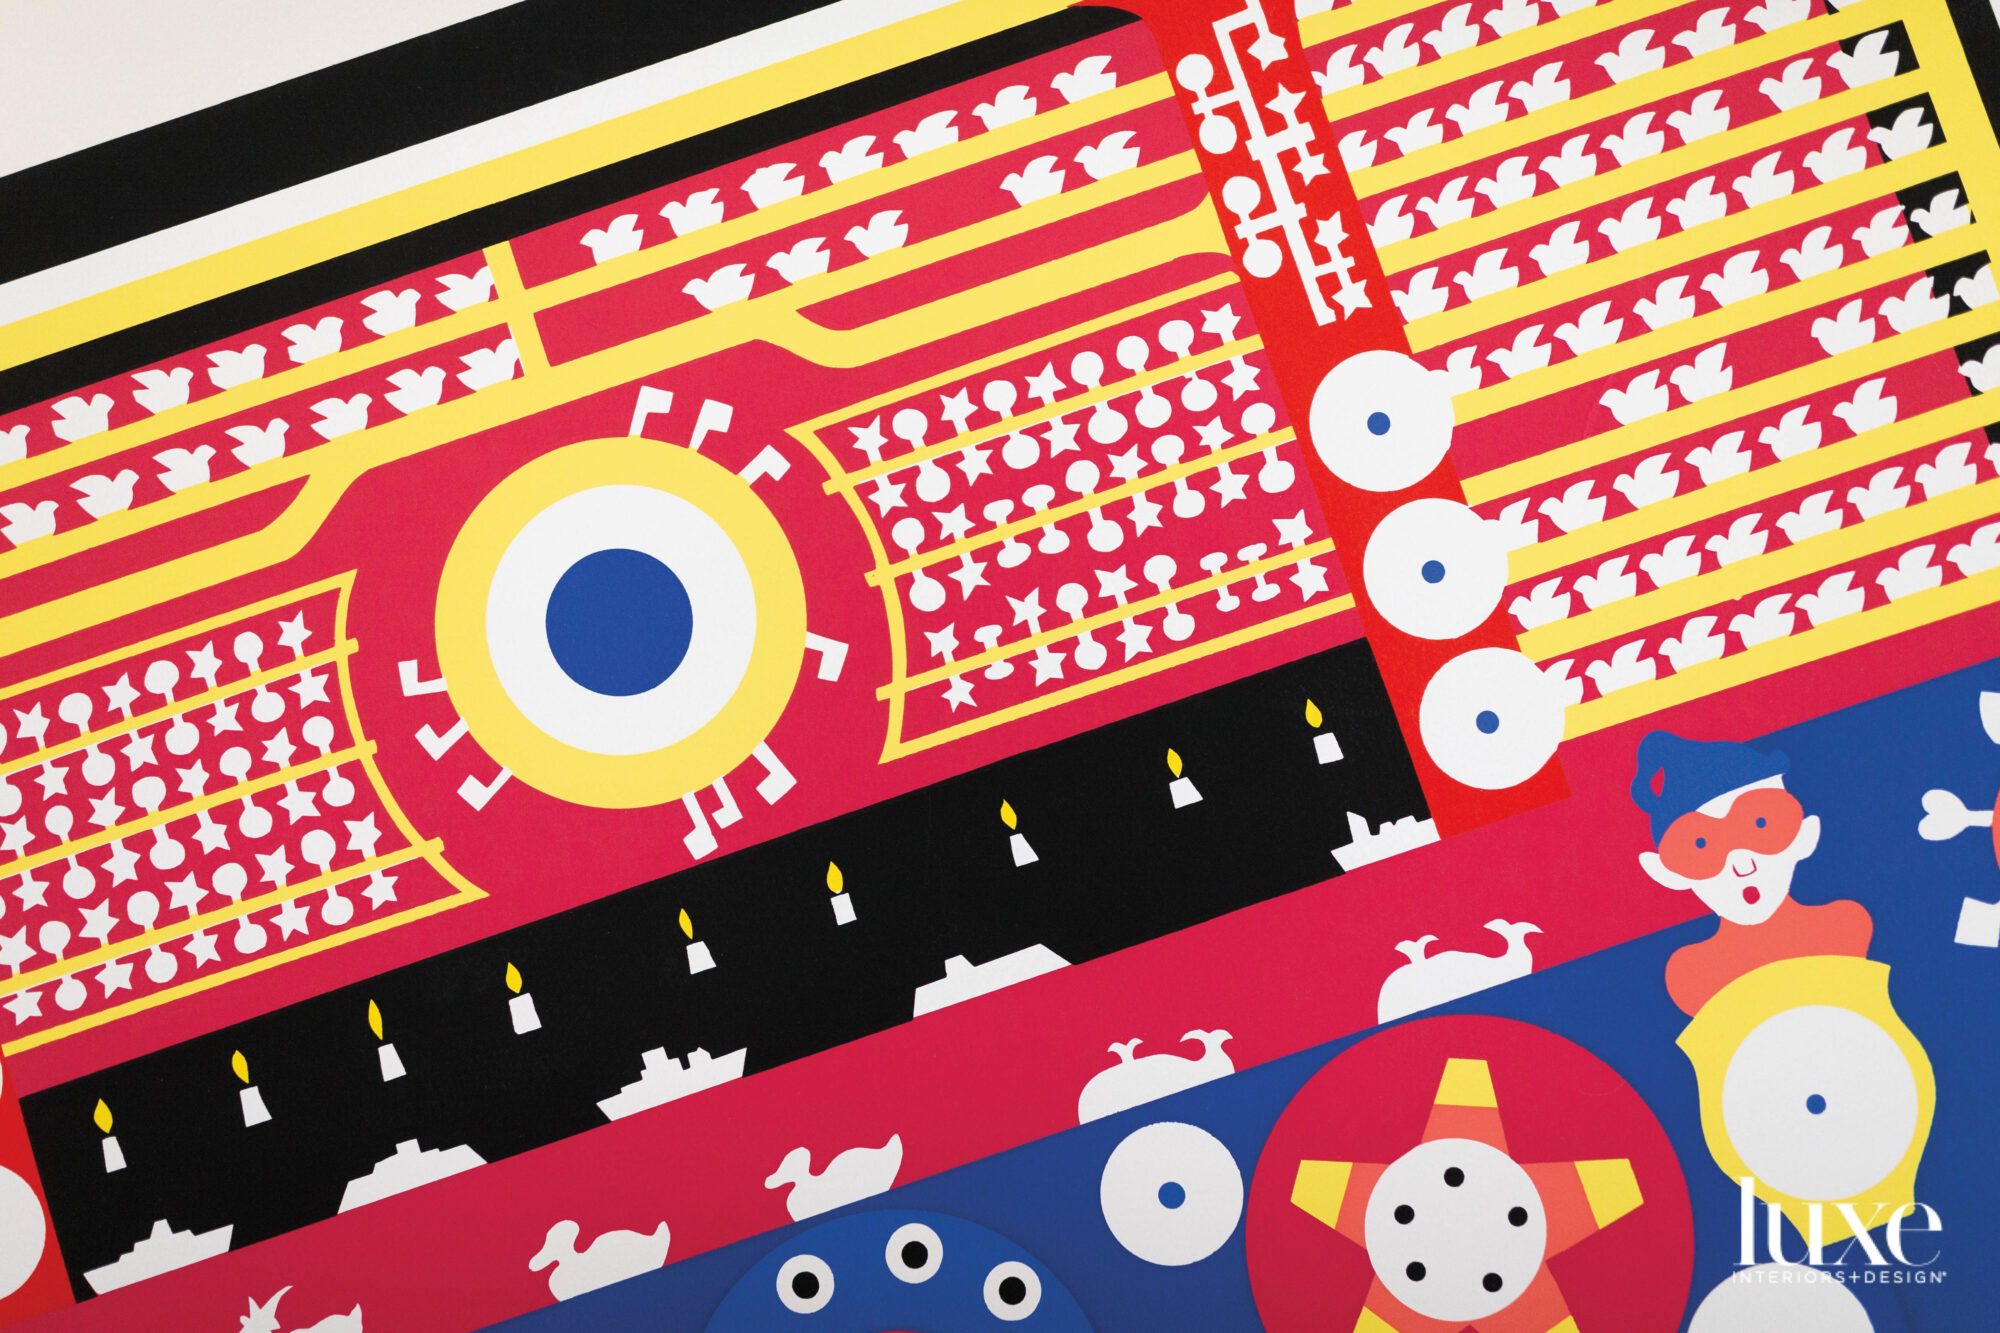 Bright red, blue and yellow shooting gallery-inspired artwork.